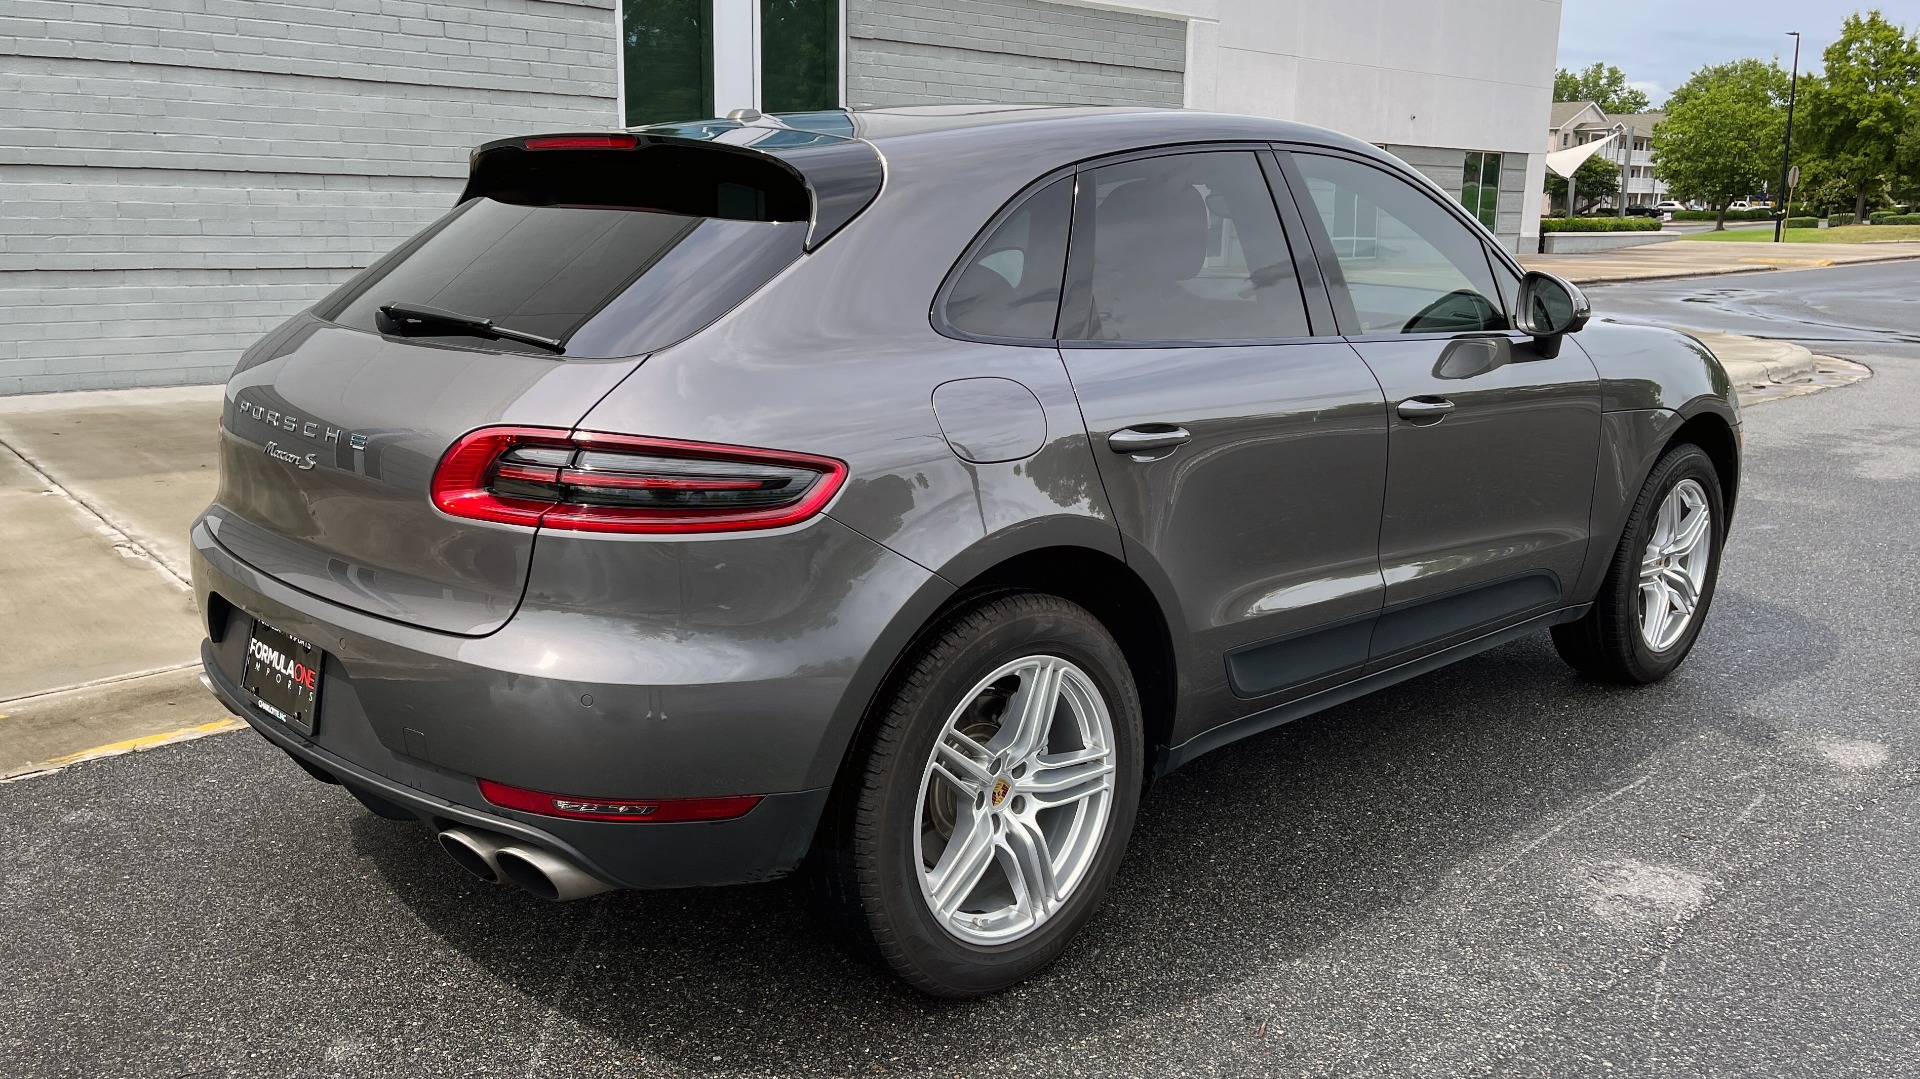 Used 2016 Porsche MACAN S PREMIUM PLUS / AWD / NAV / BOSE / SUNROOF / LCA / PARK ASST / INFOTAINMEN for sale $45,256 at Formula Imports in Charlotte NC 28227 2